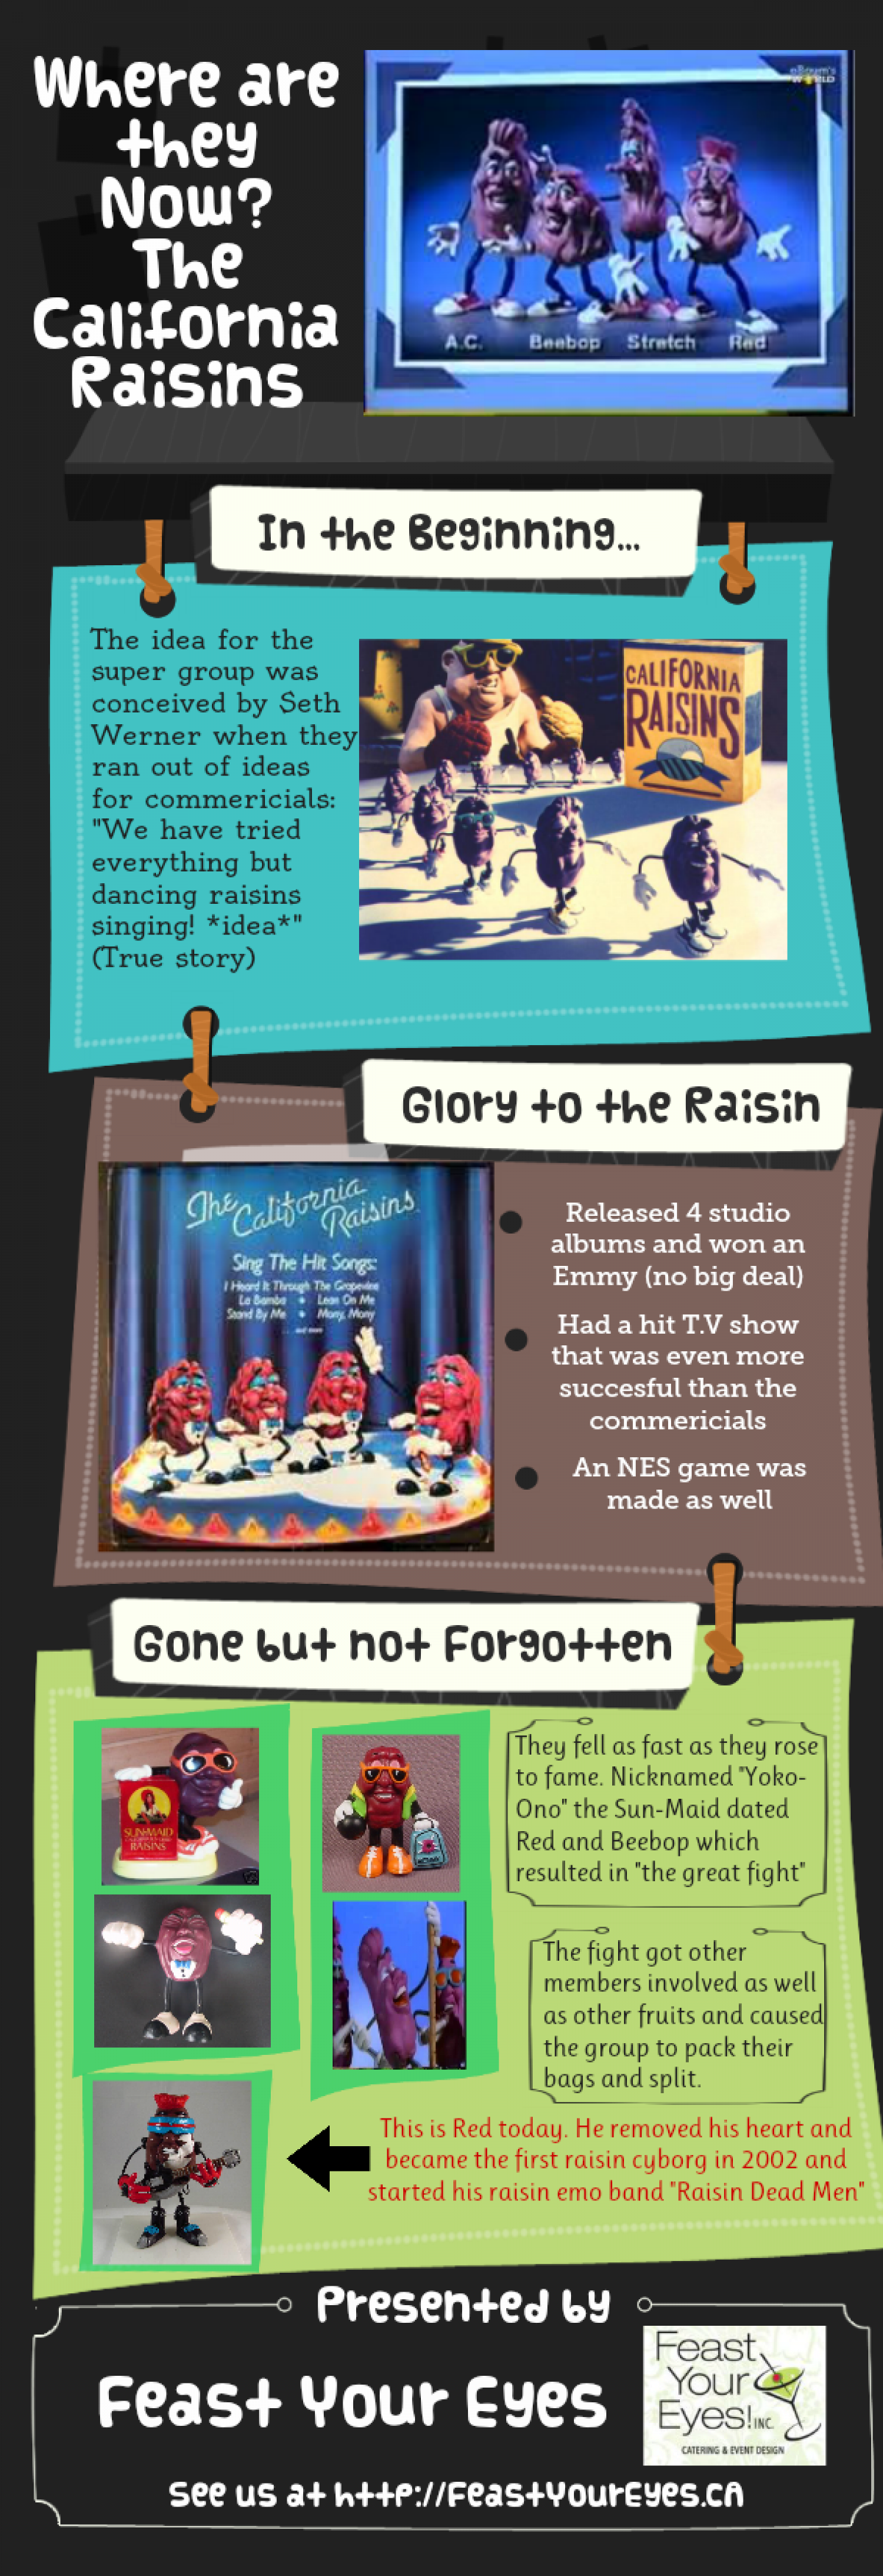 Where are they Now? The California Raisins Infographic